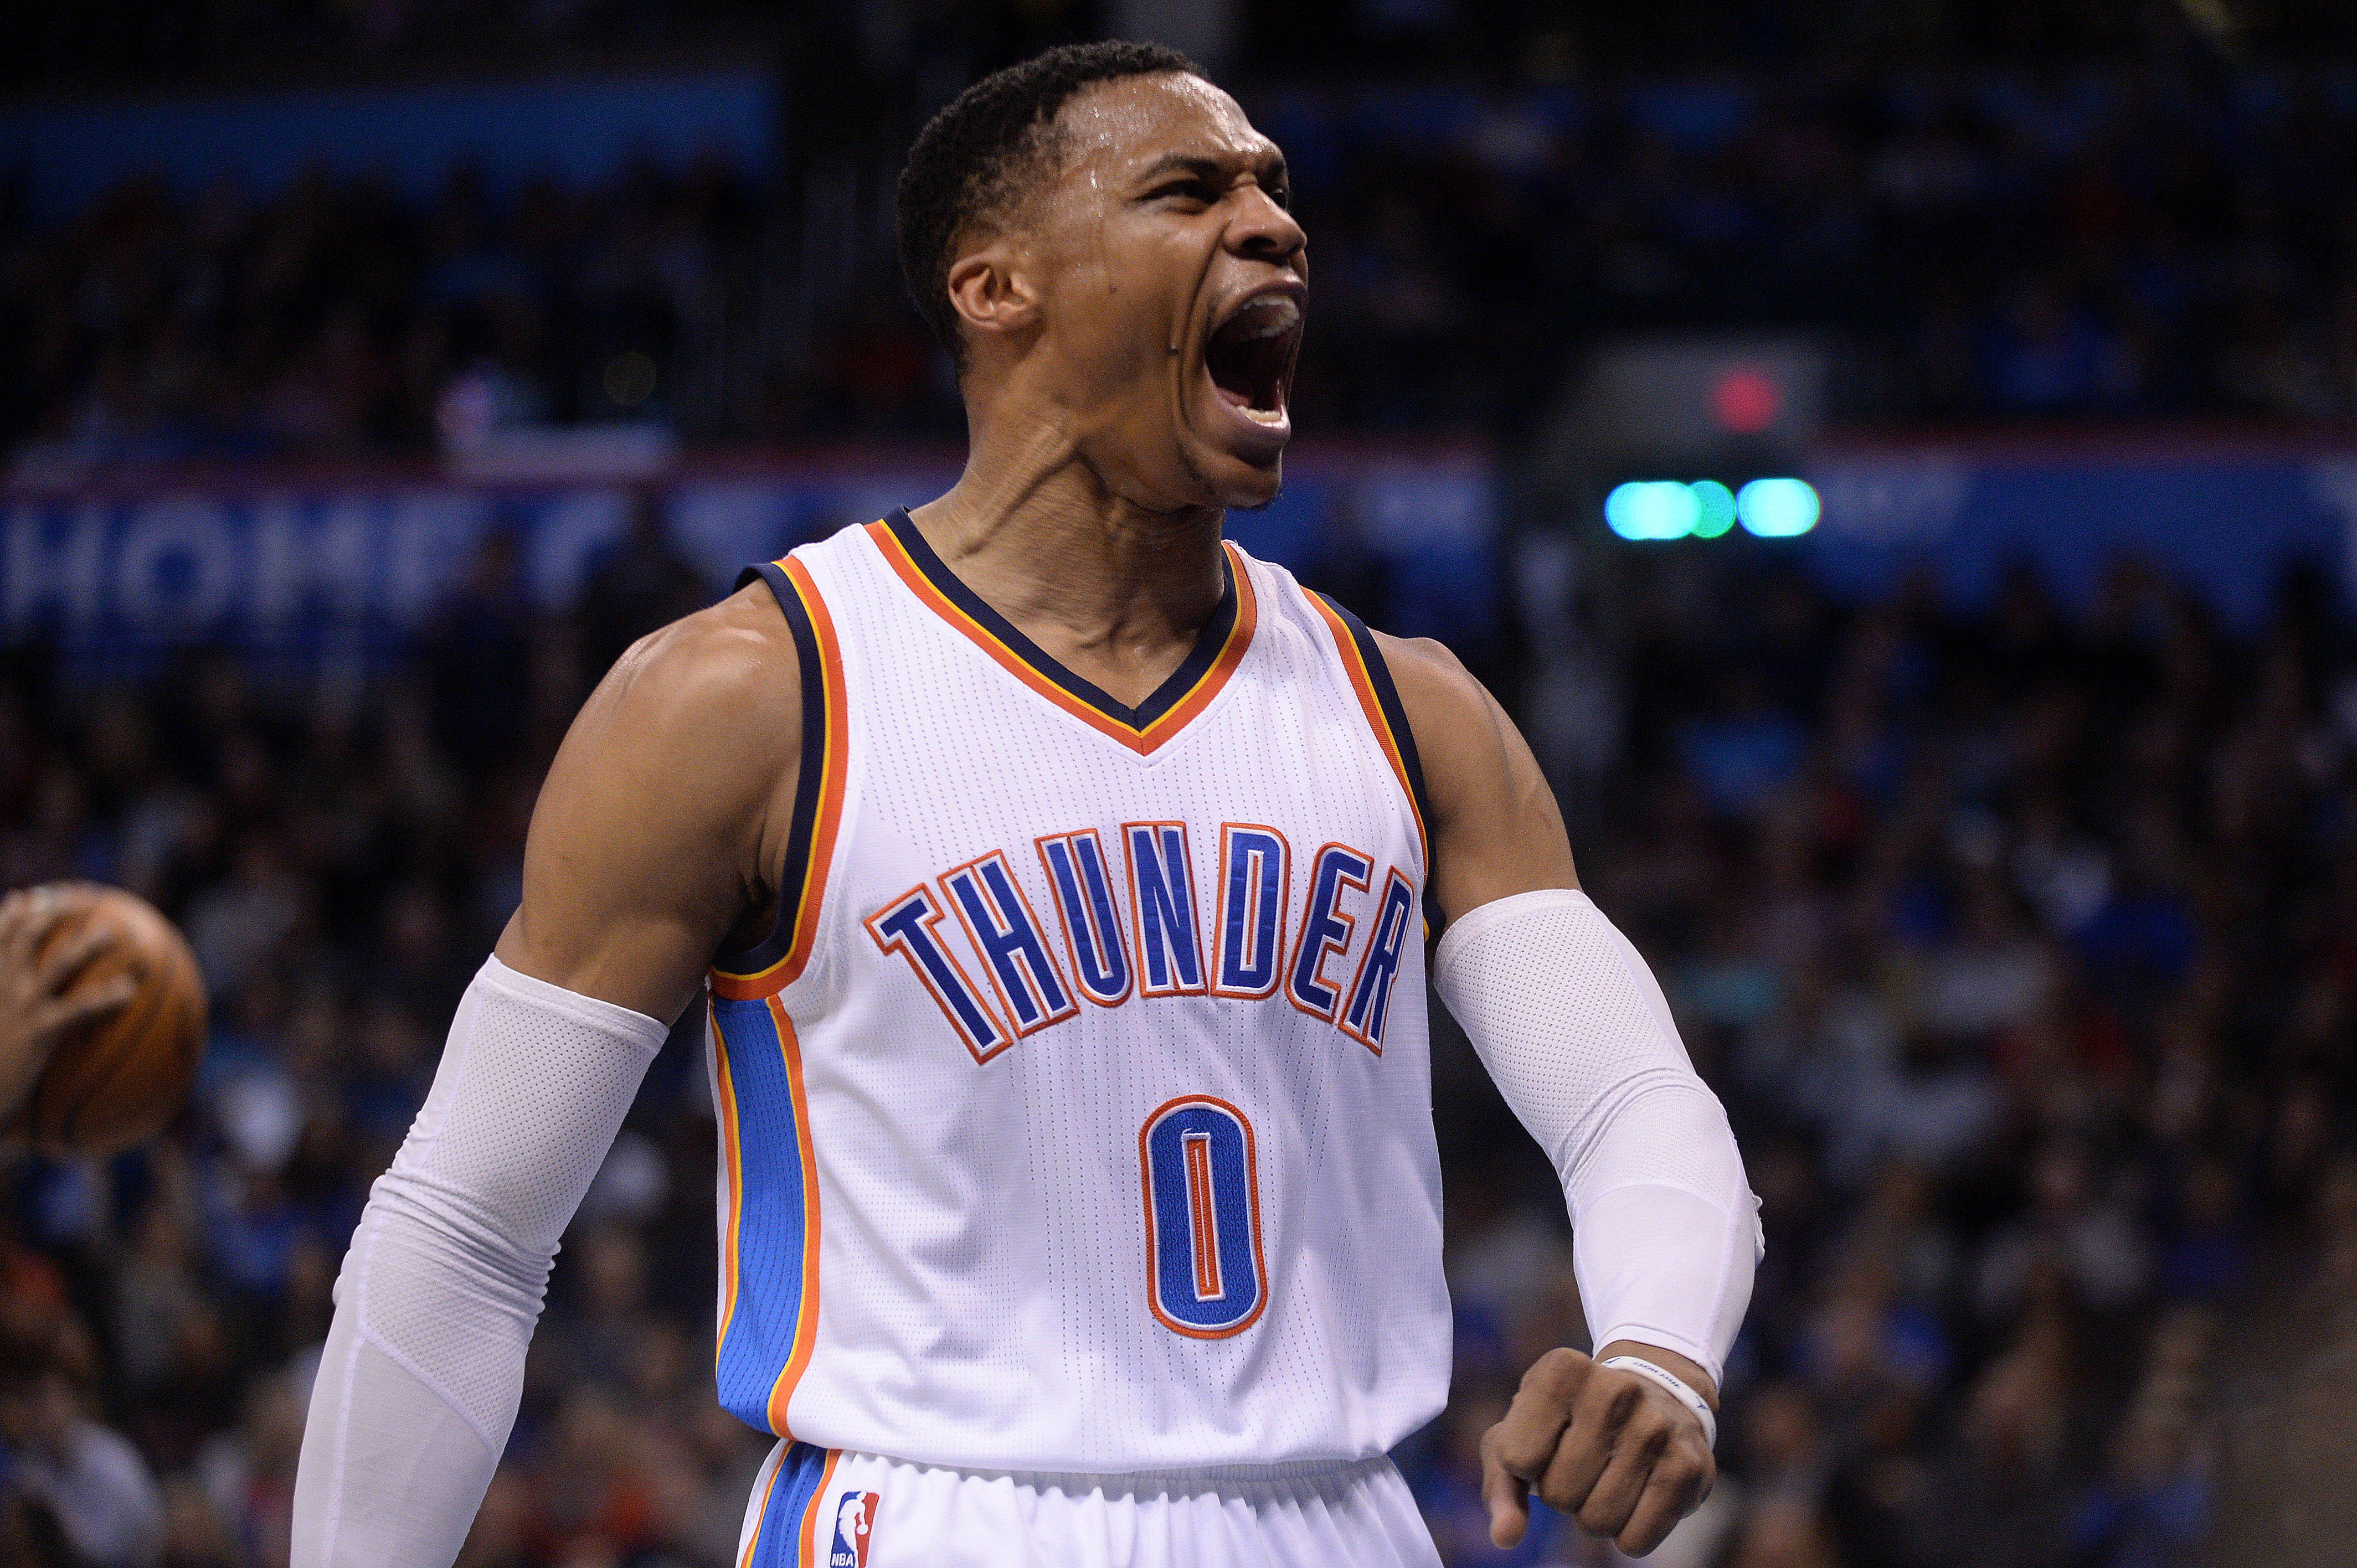 russell westbrook - photo #37